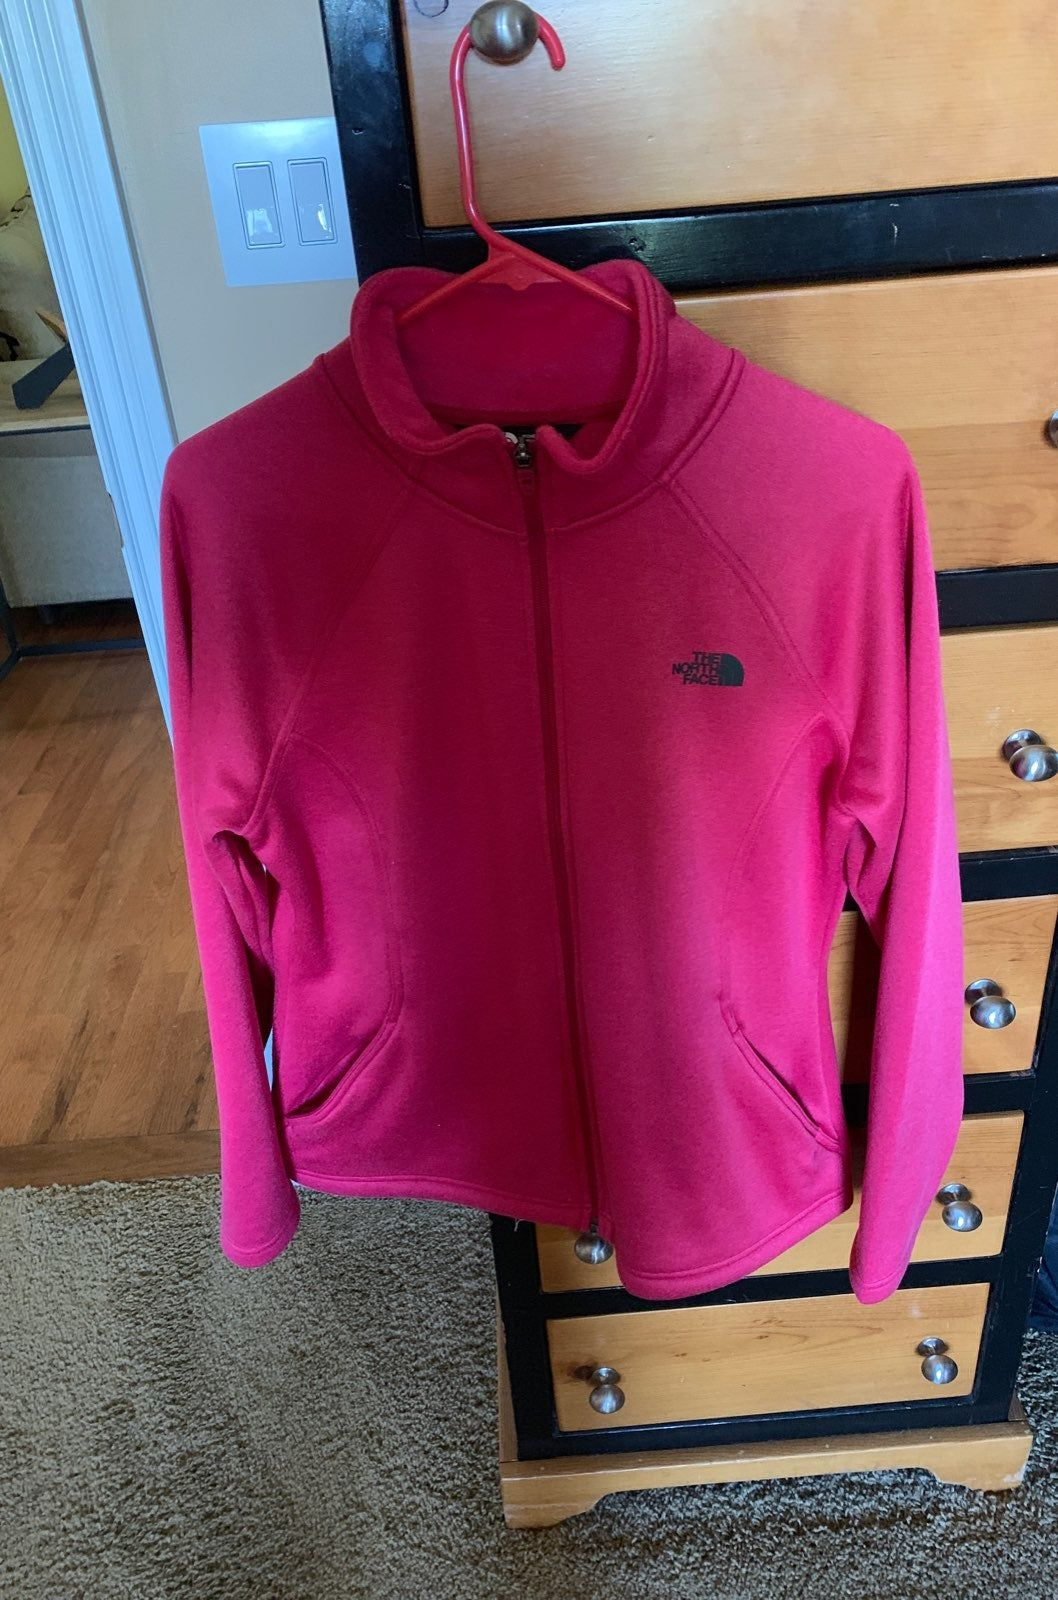 North Face Hot Pink Jacket Worn One Time Pink Jacket North Face Jacket Jackets [ 1600 x 1058 Pixel ]